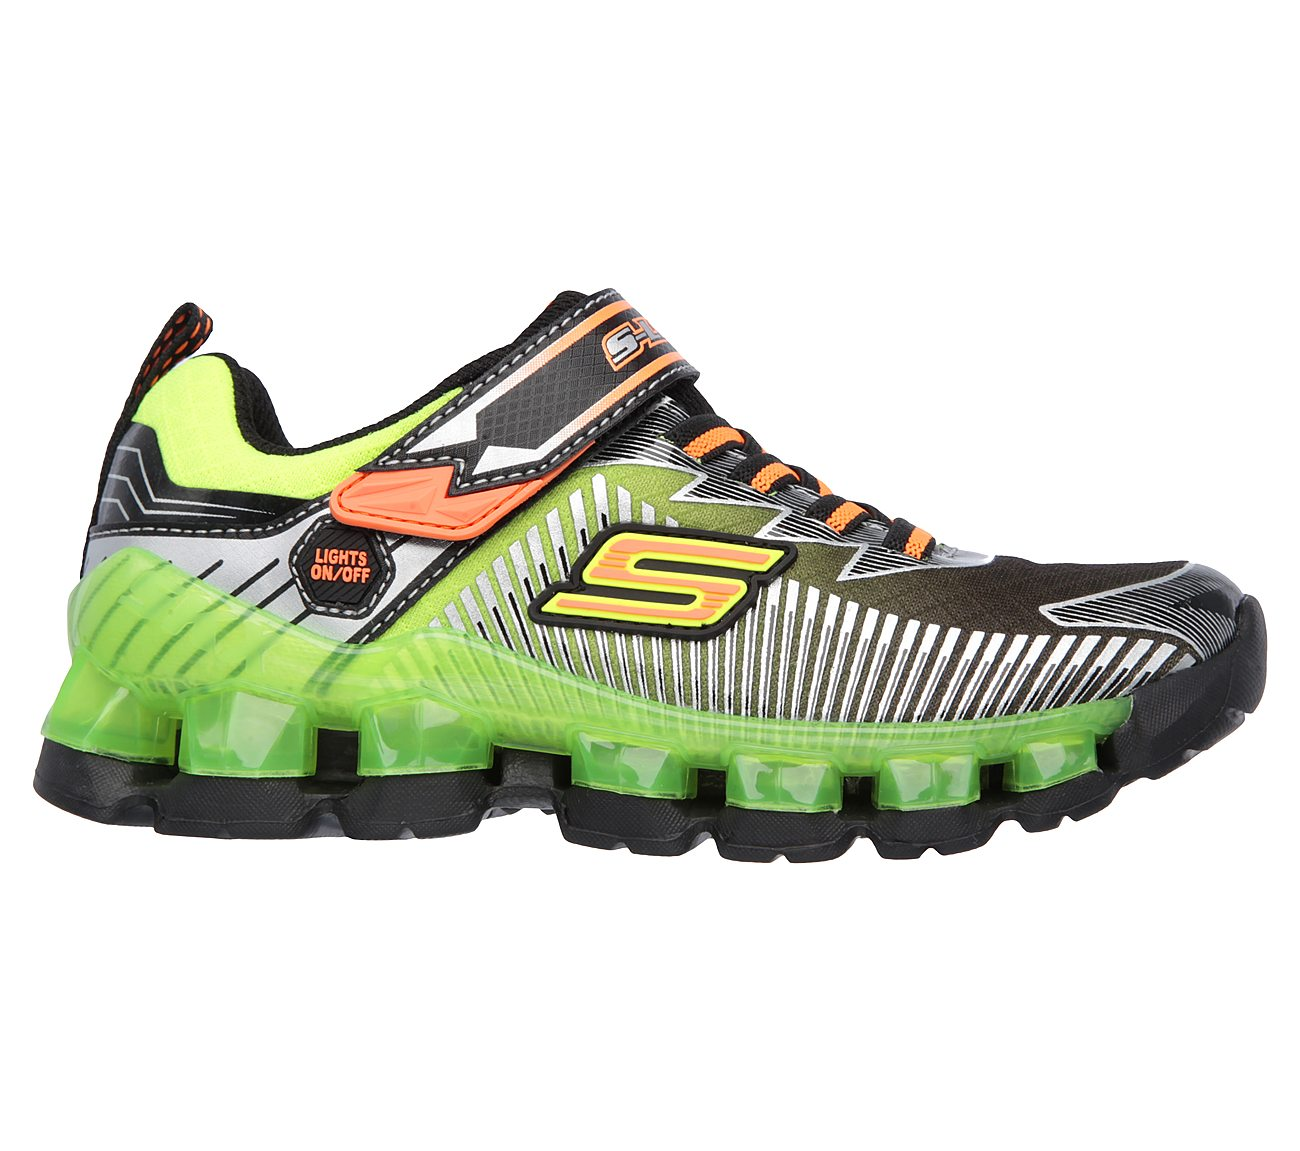 Boys Skechers S Lights Flashpod Scoria Light Up Sneakers Sz